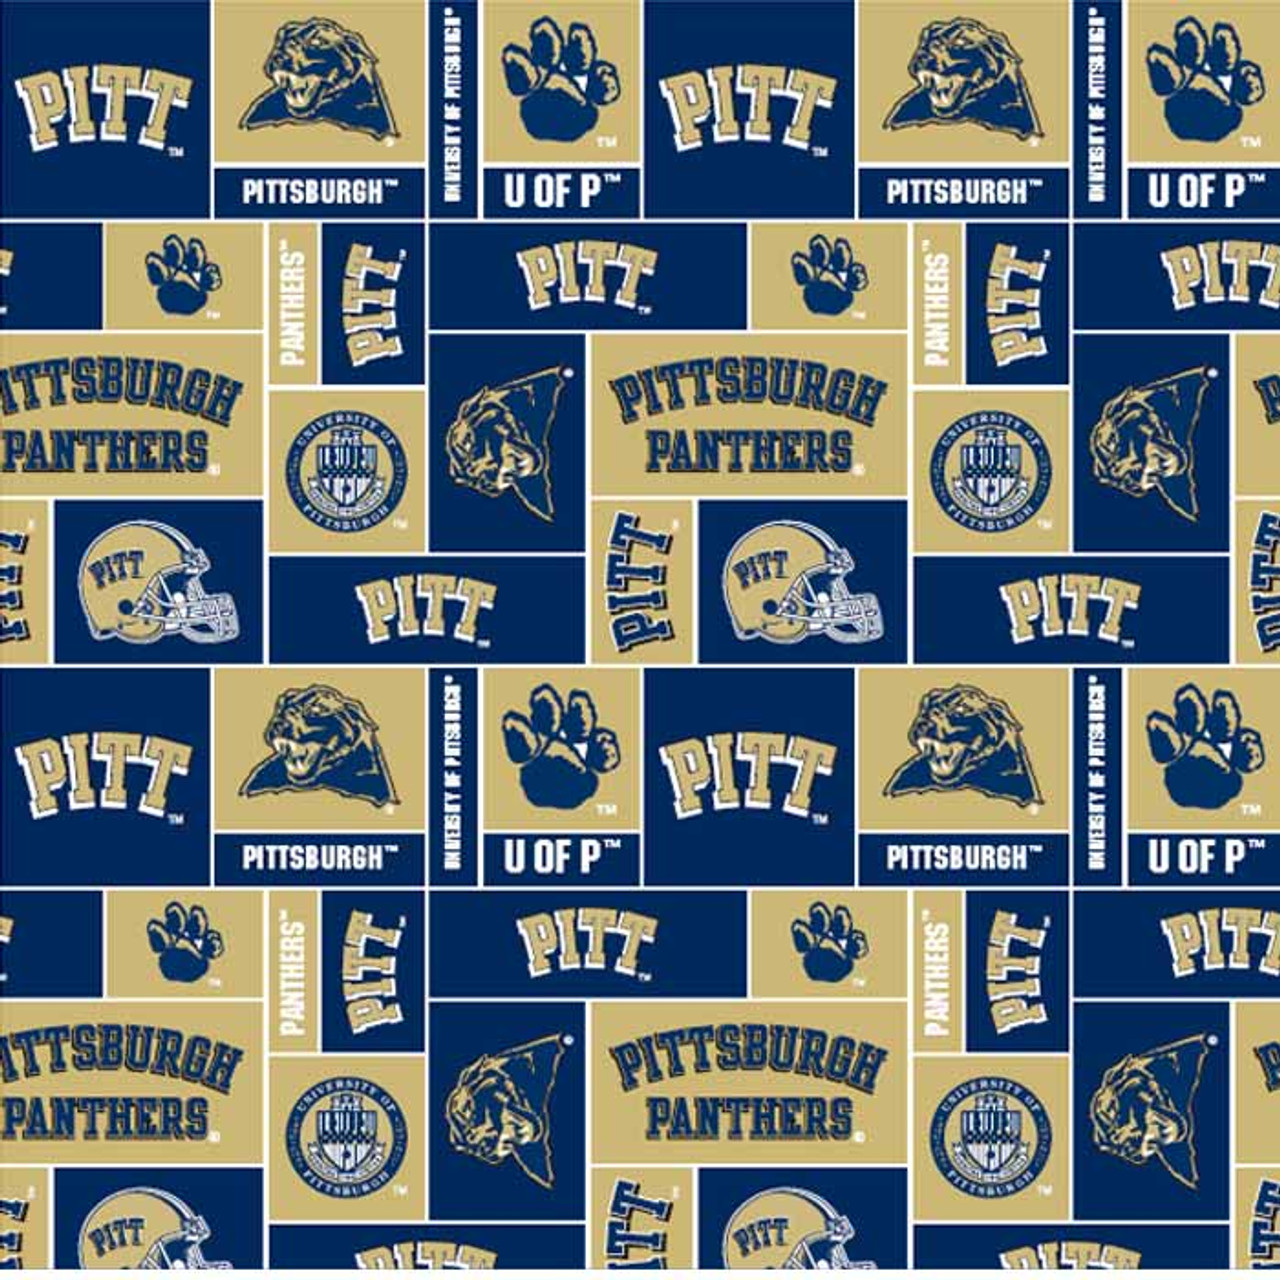 University Of Pittsburgh Fabric Super Soft Fleece Classic Geometric Design Sold By The Yard College Fabric Store